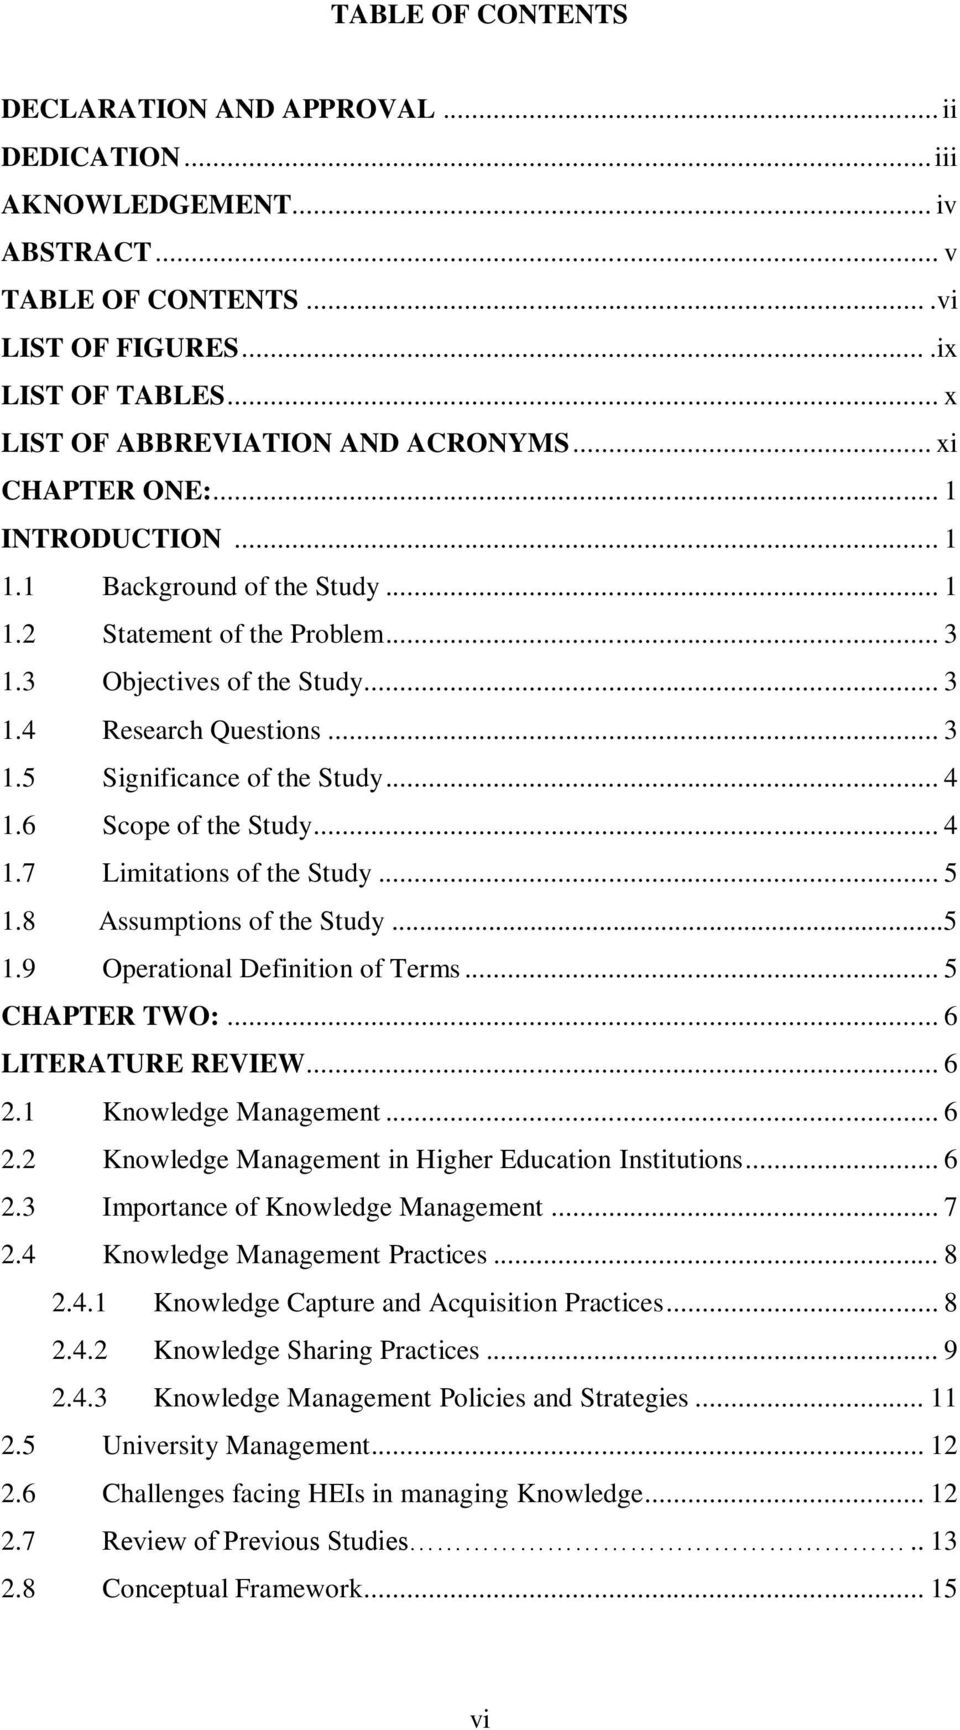 a study on the significance of knowledge management in business Business school – university-level institution that confers degrees in business administration or management such a school can also be known as school of management, school of business administration, or, colloquially, b-school or biz school.